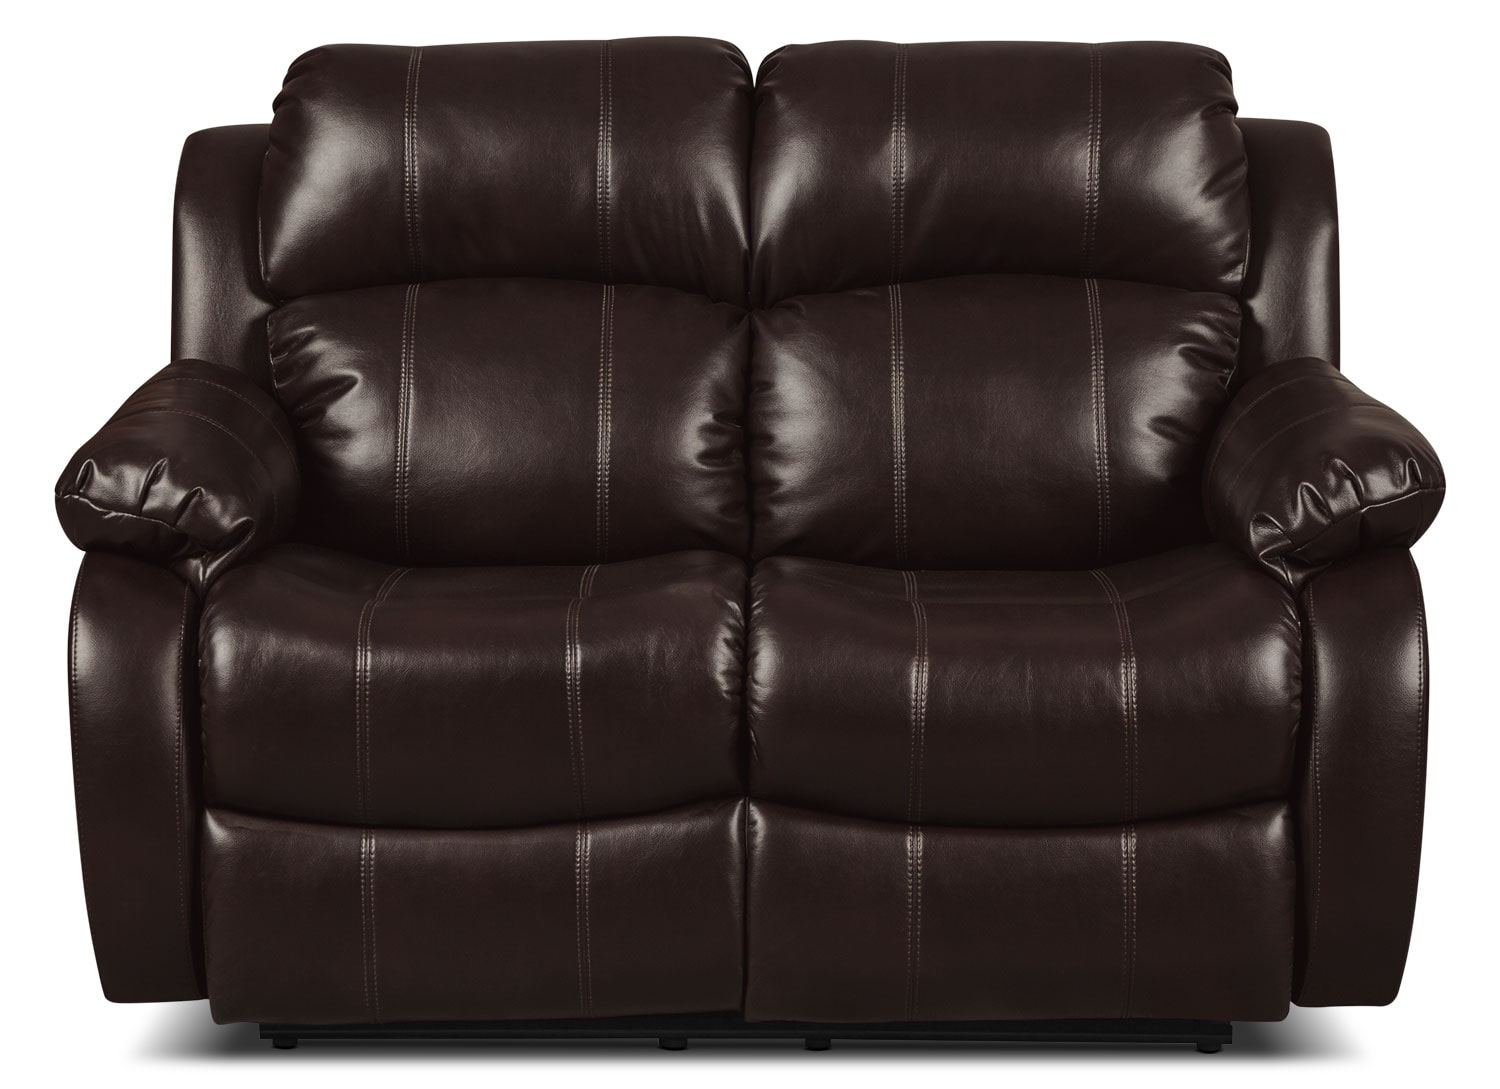 Omega 3 Leather-Look Fabric Reclining Loveseat – Brown